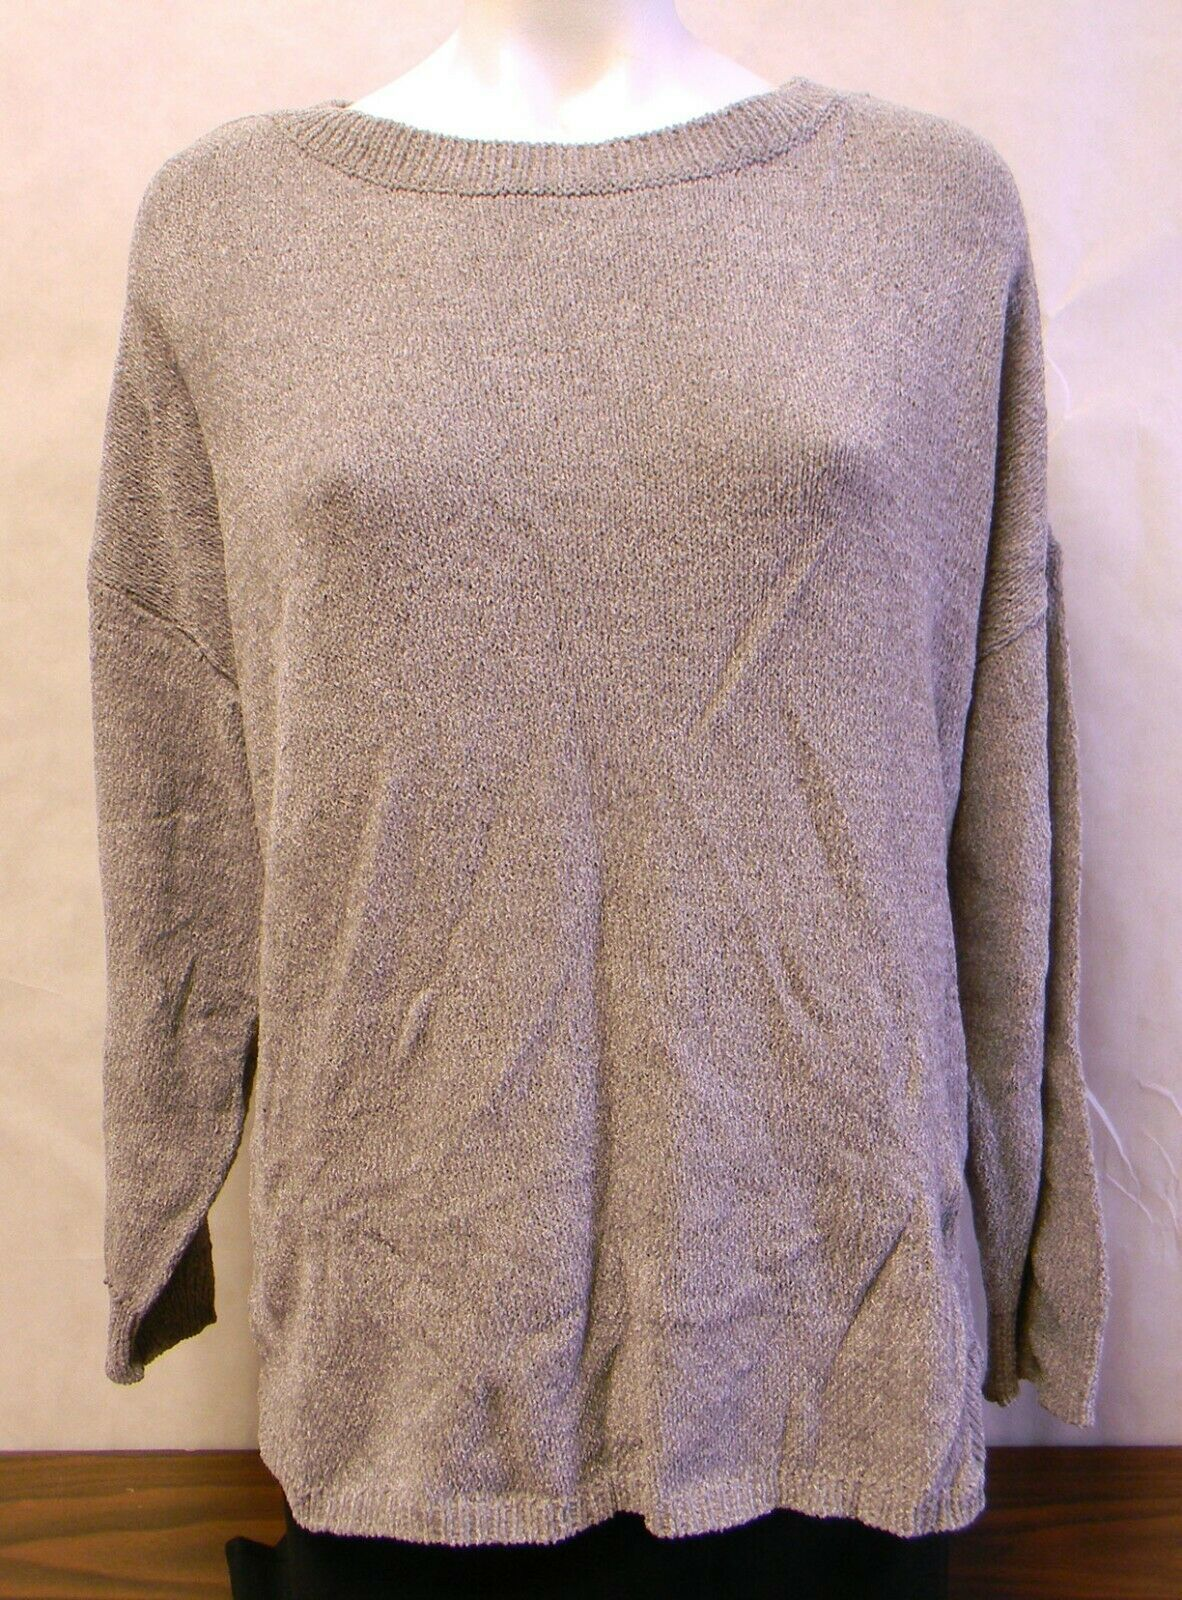 Primary image for Women's Ellen Tracy Knitted Mineral Tweed Gray Sweater Size XXL Long Sleeve